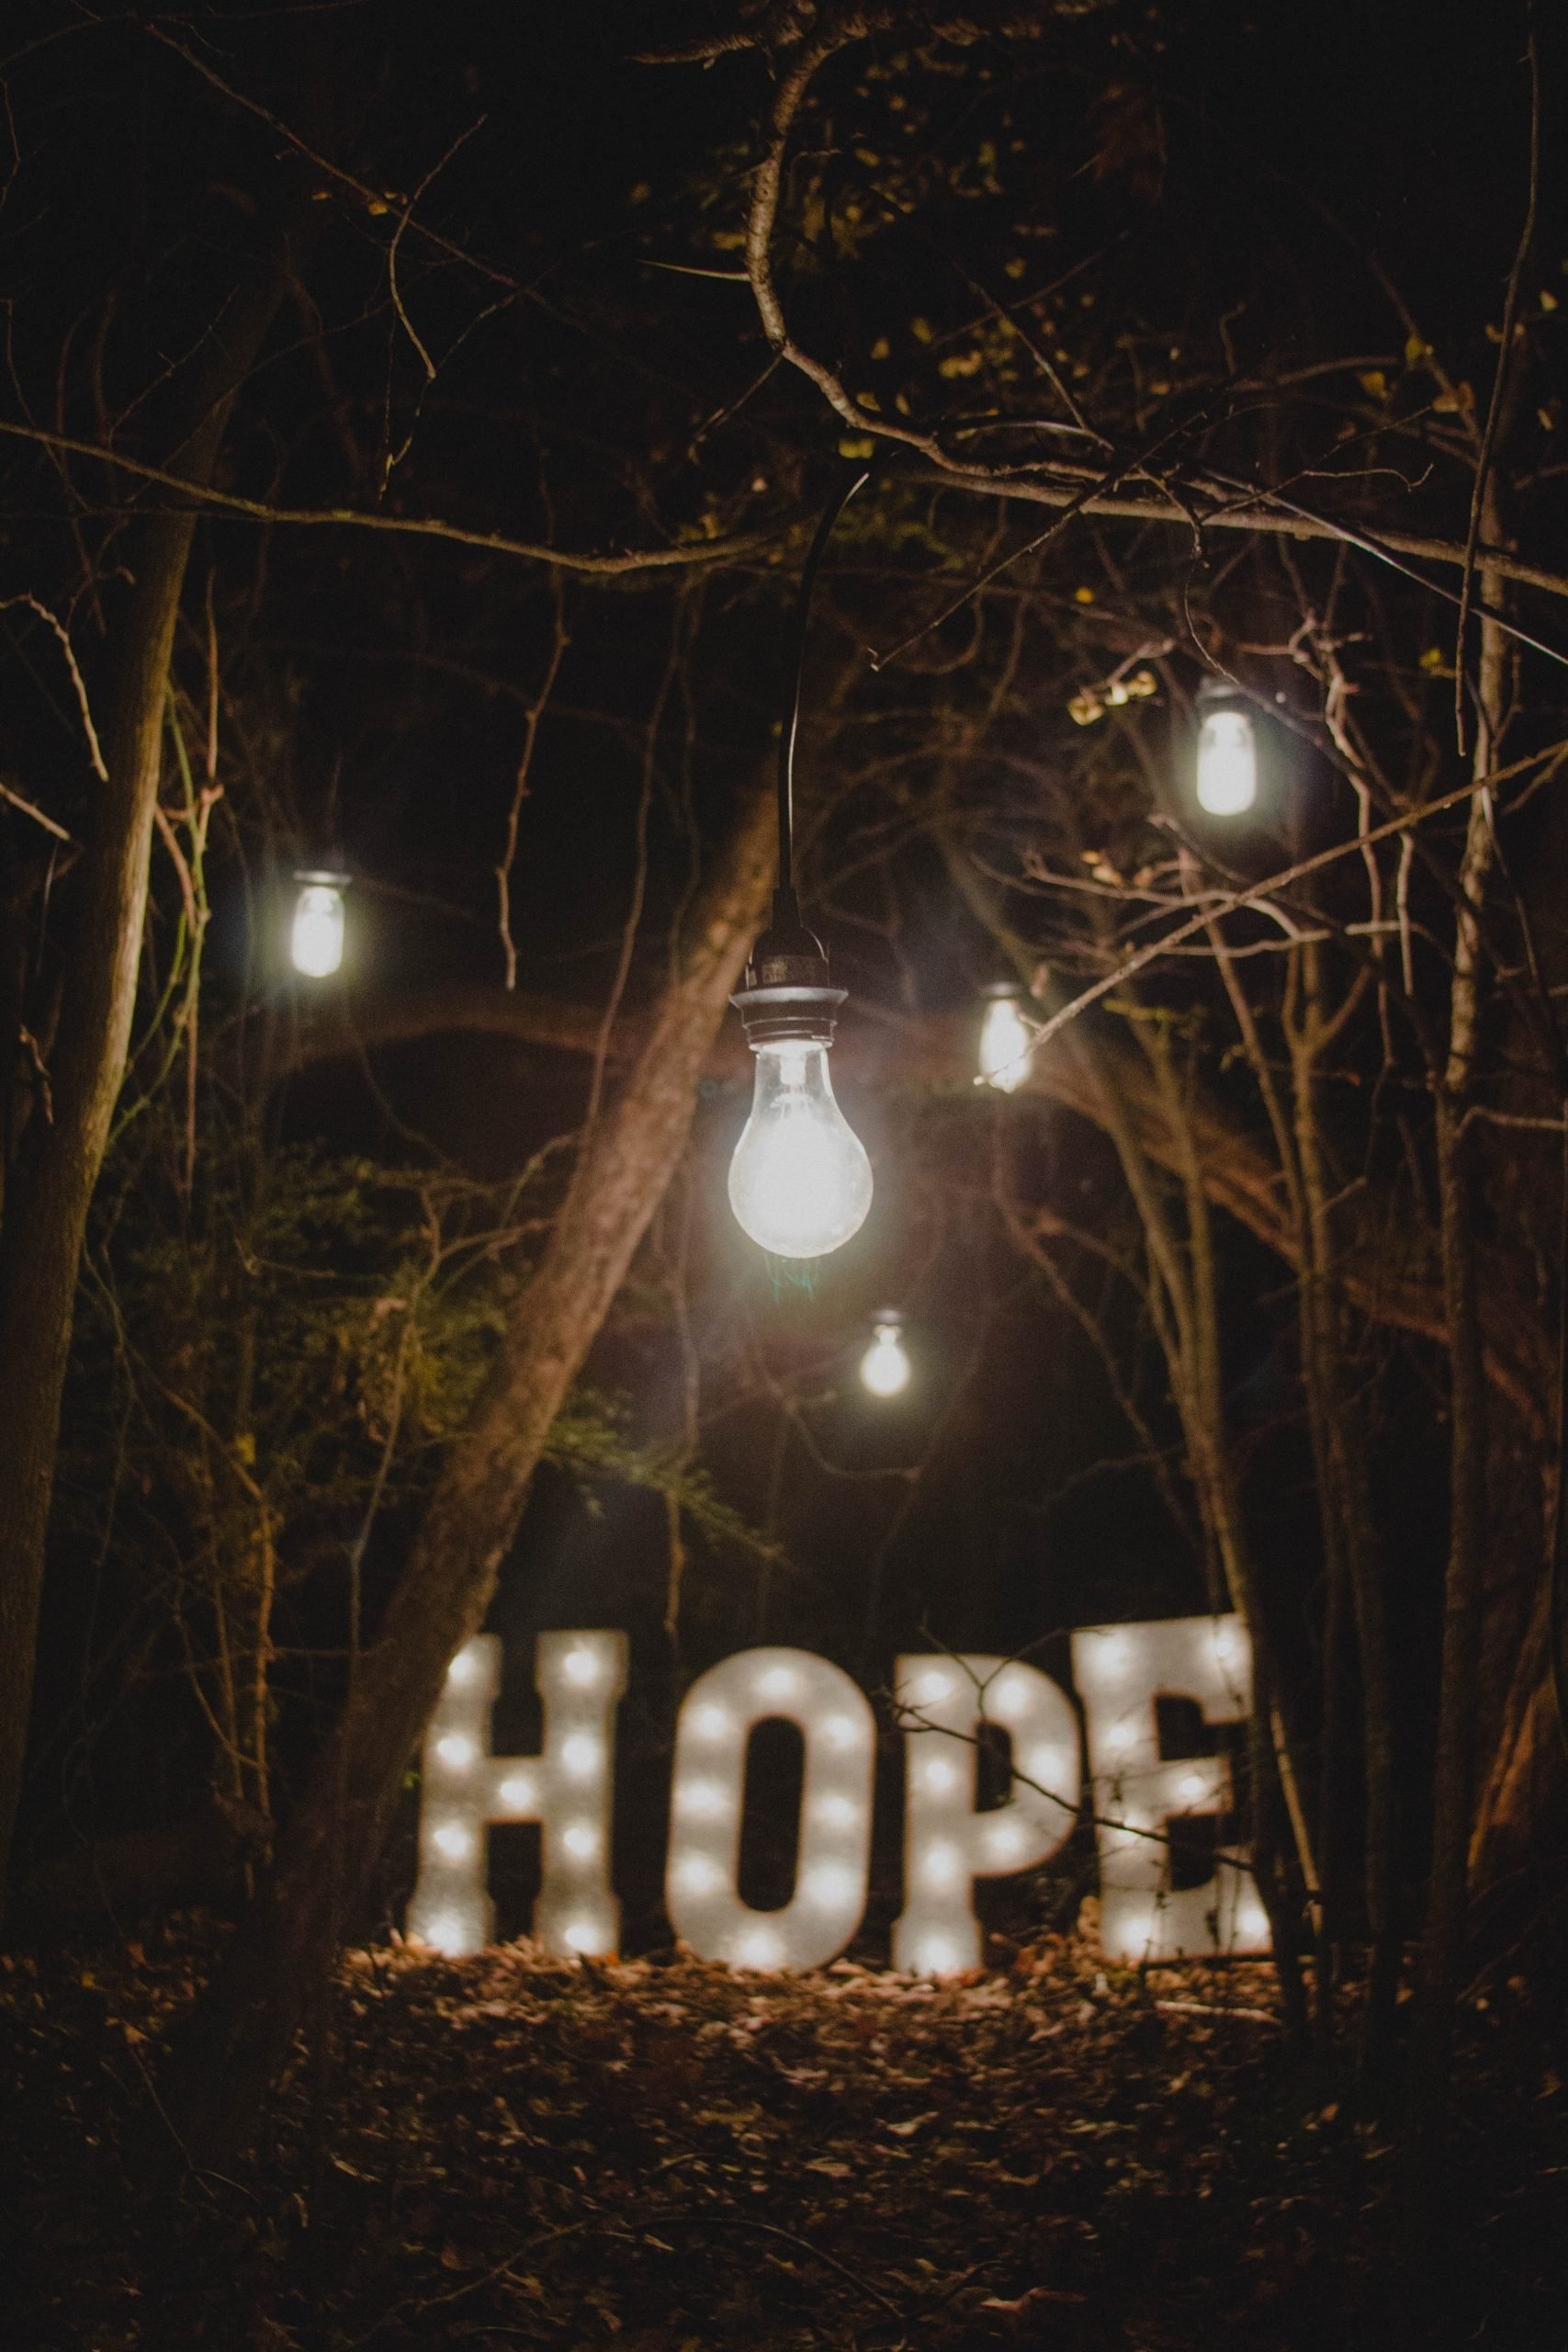 You Need To Have Hope in Your Life